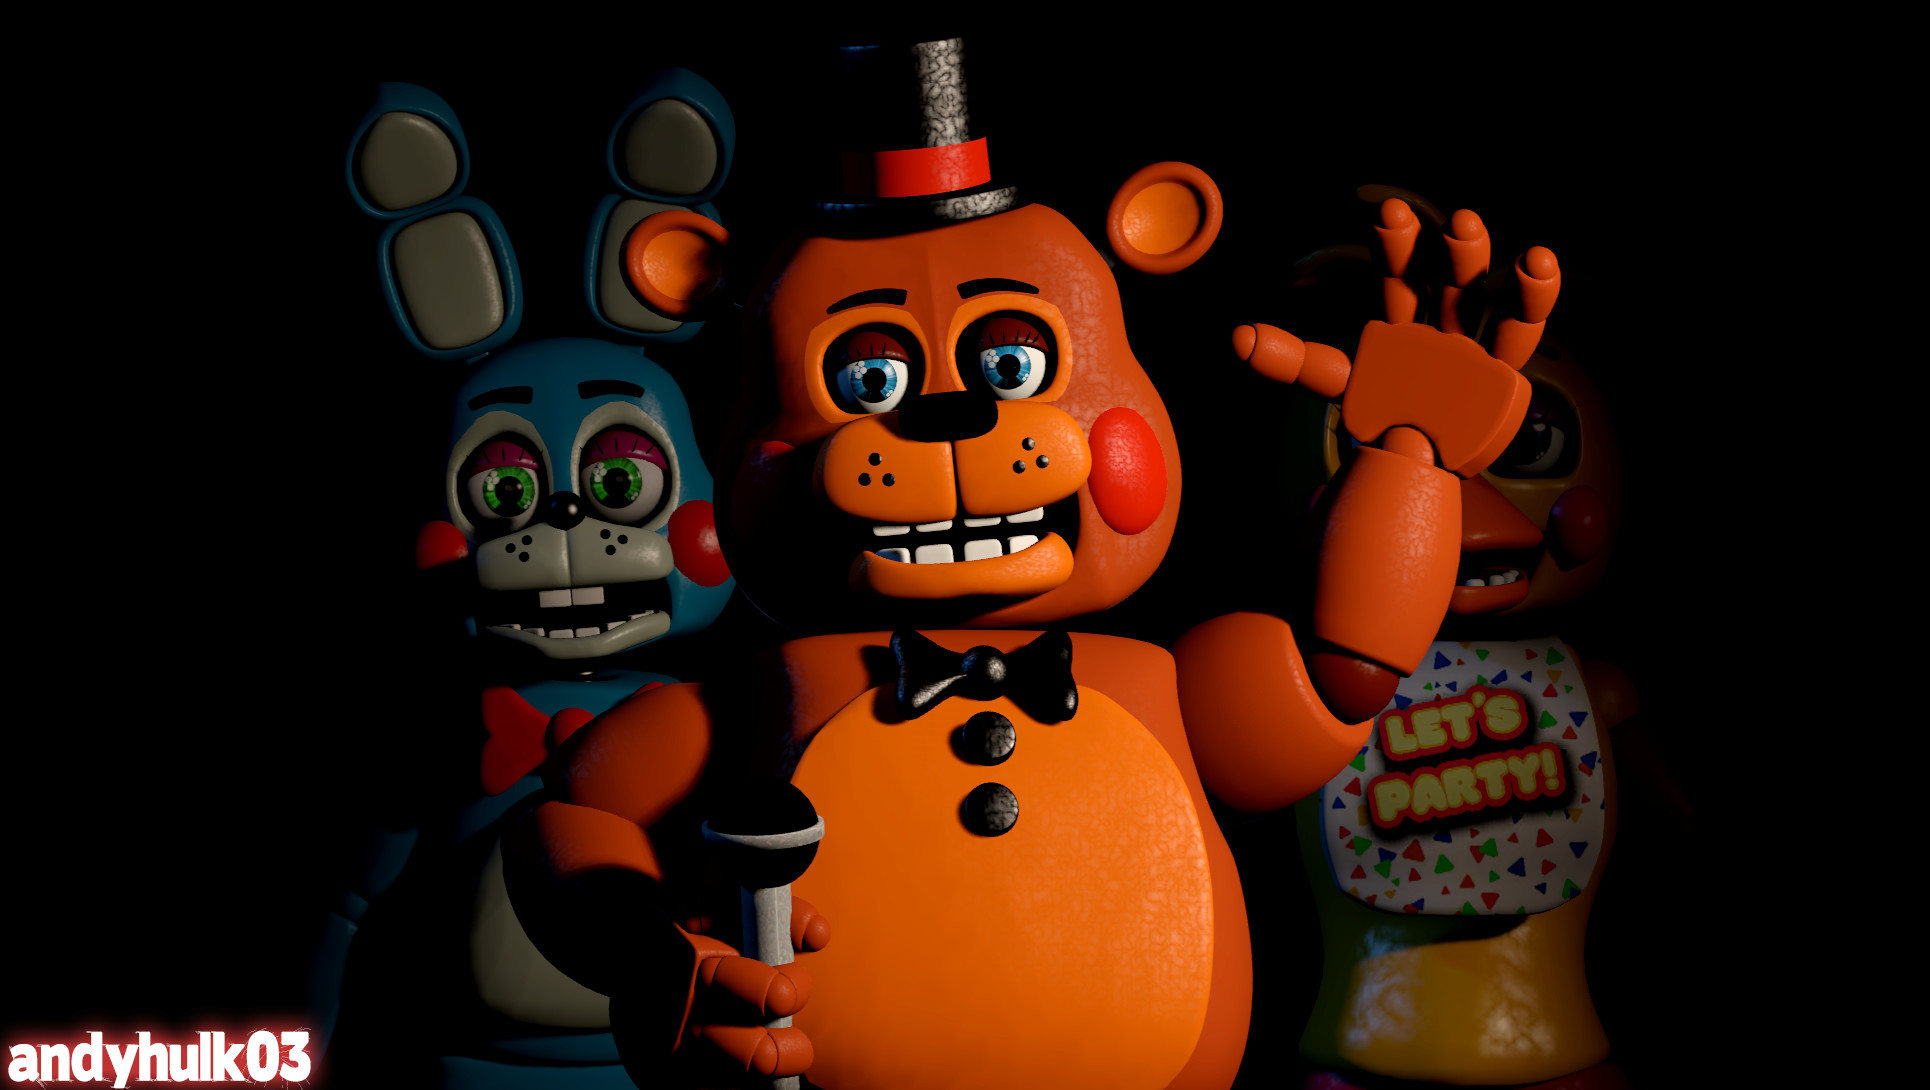 1930x1090 Toy Freddy and the 1987 Pizza Variety Band (FNAF 2)